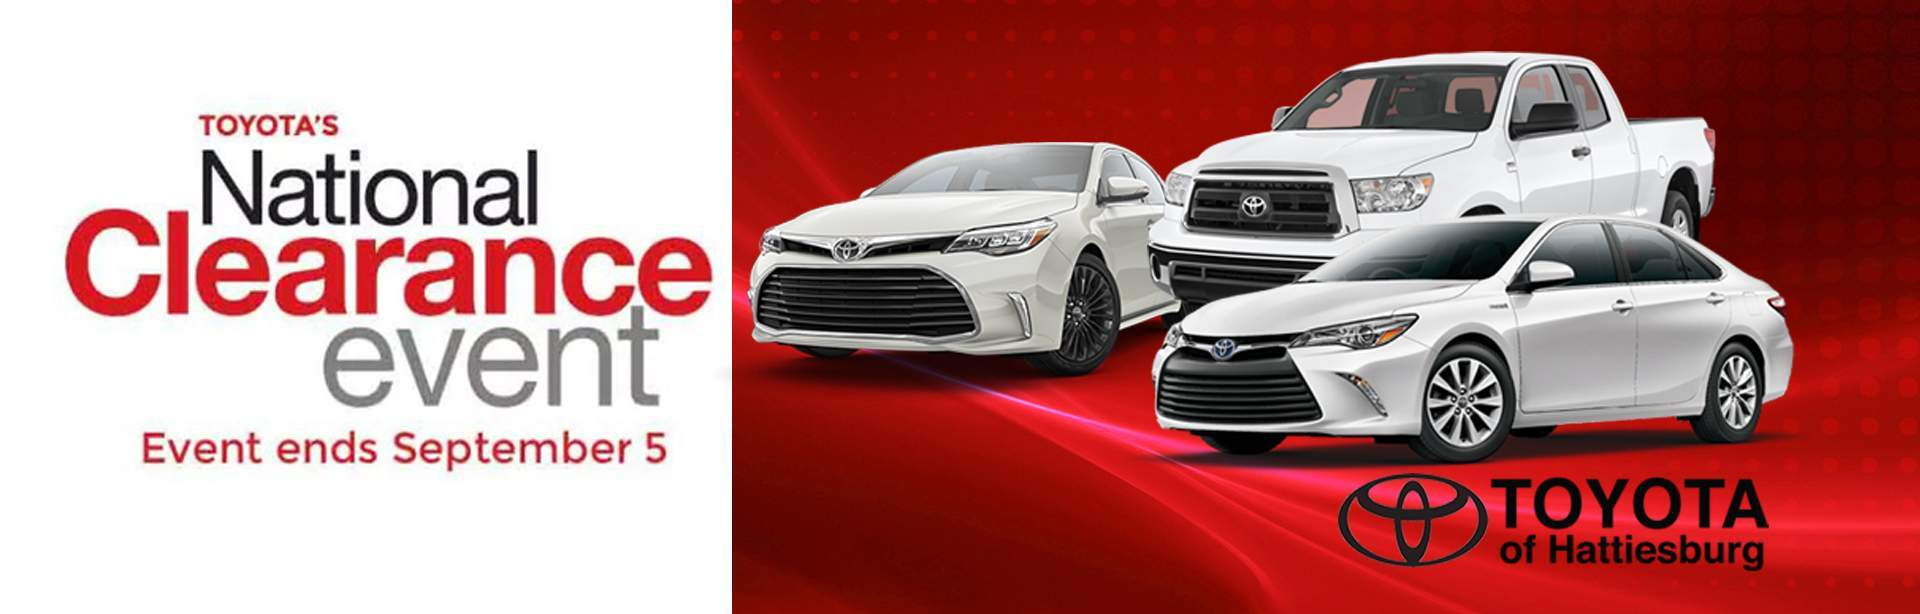 Toyota's National Clearance Event